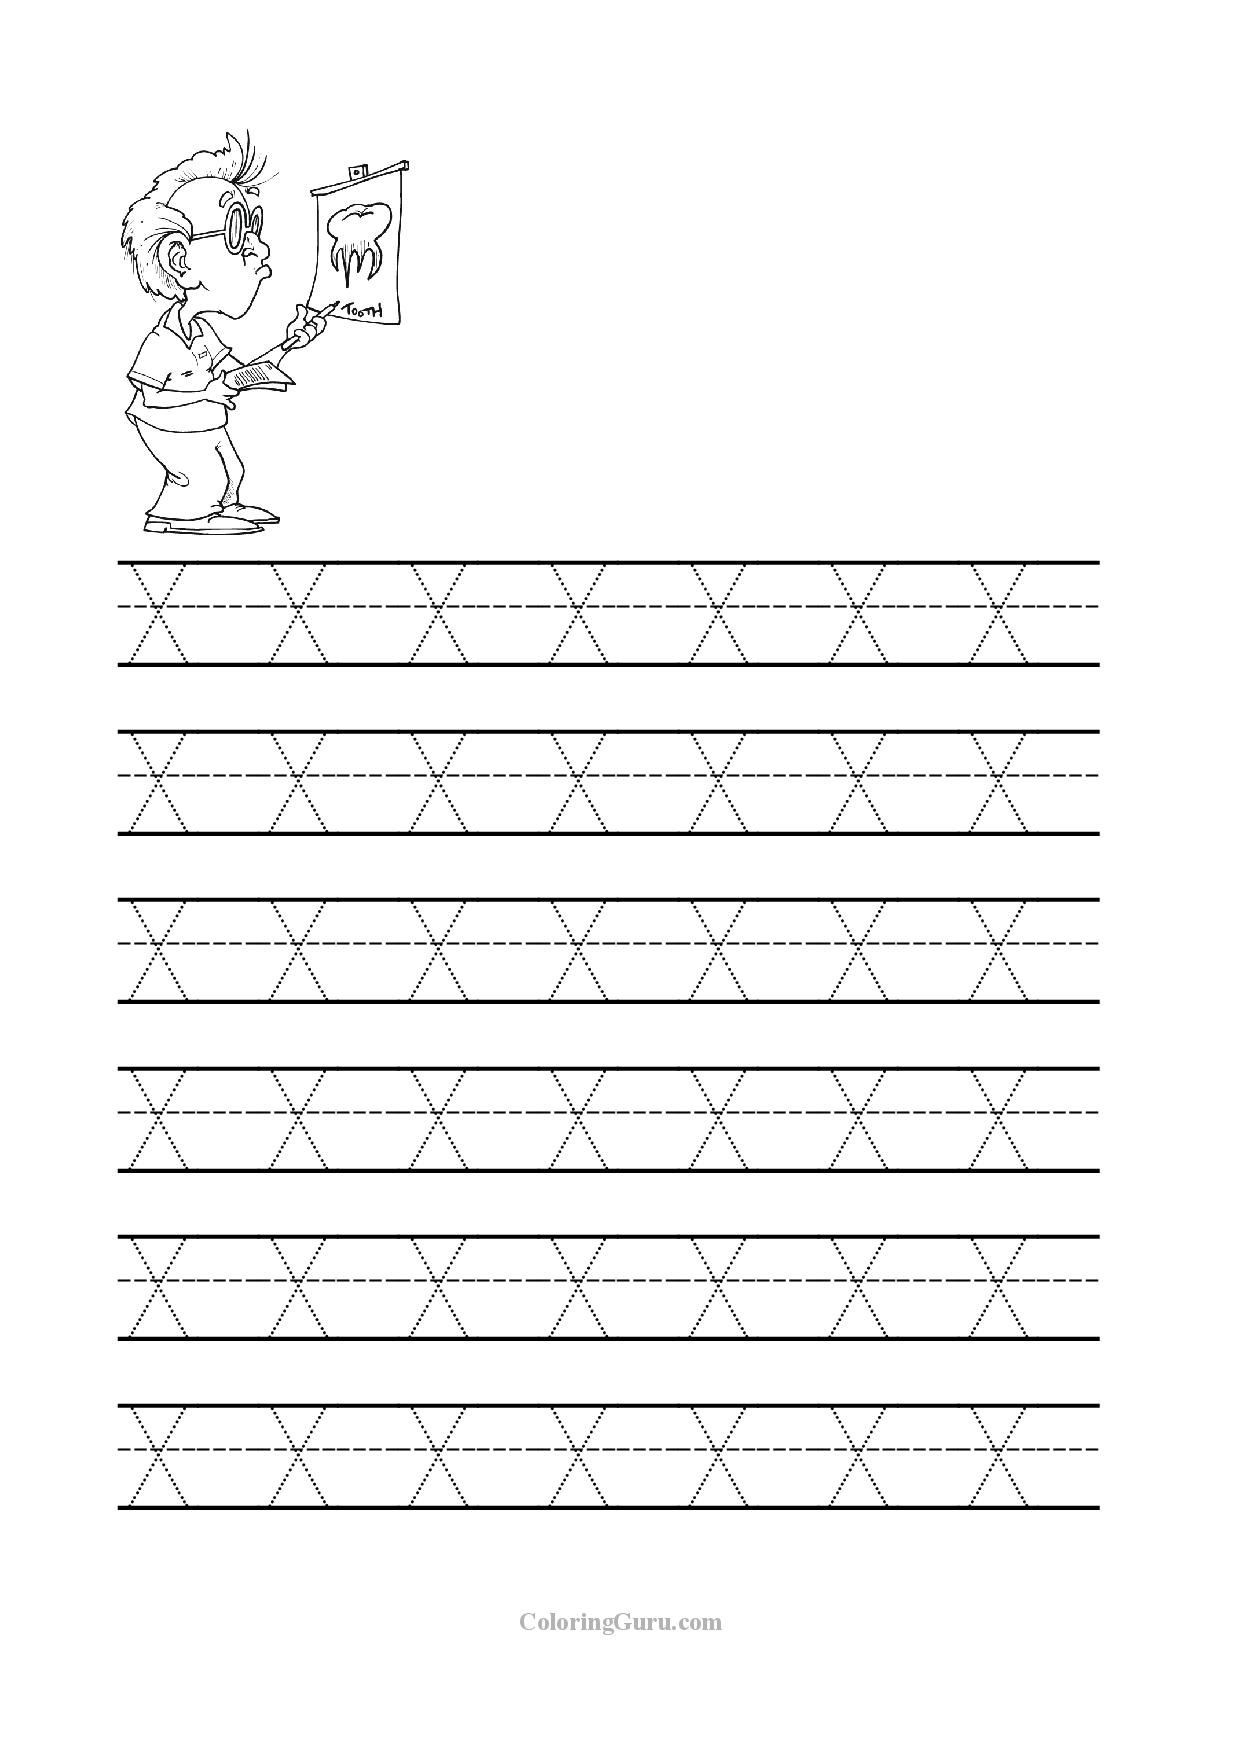 Letter X Worksheets for Preschool Free Printable Tracing Letter X Worksheets for Preschool